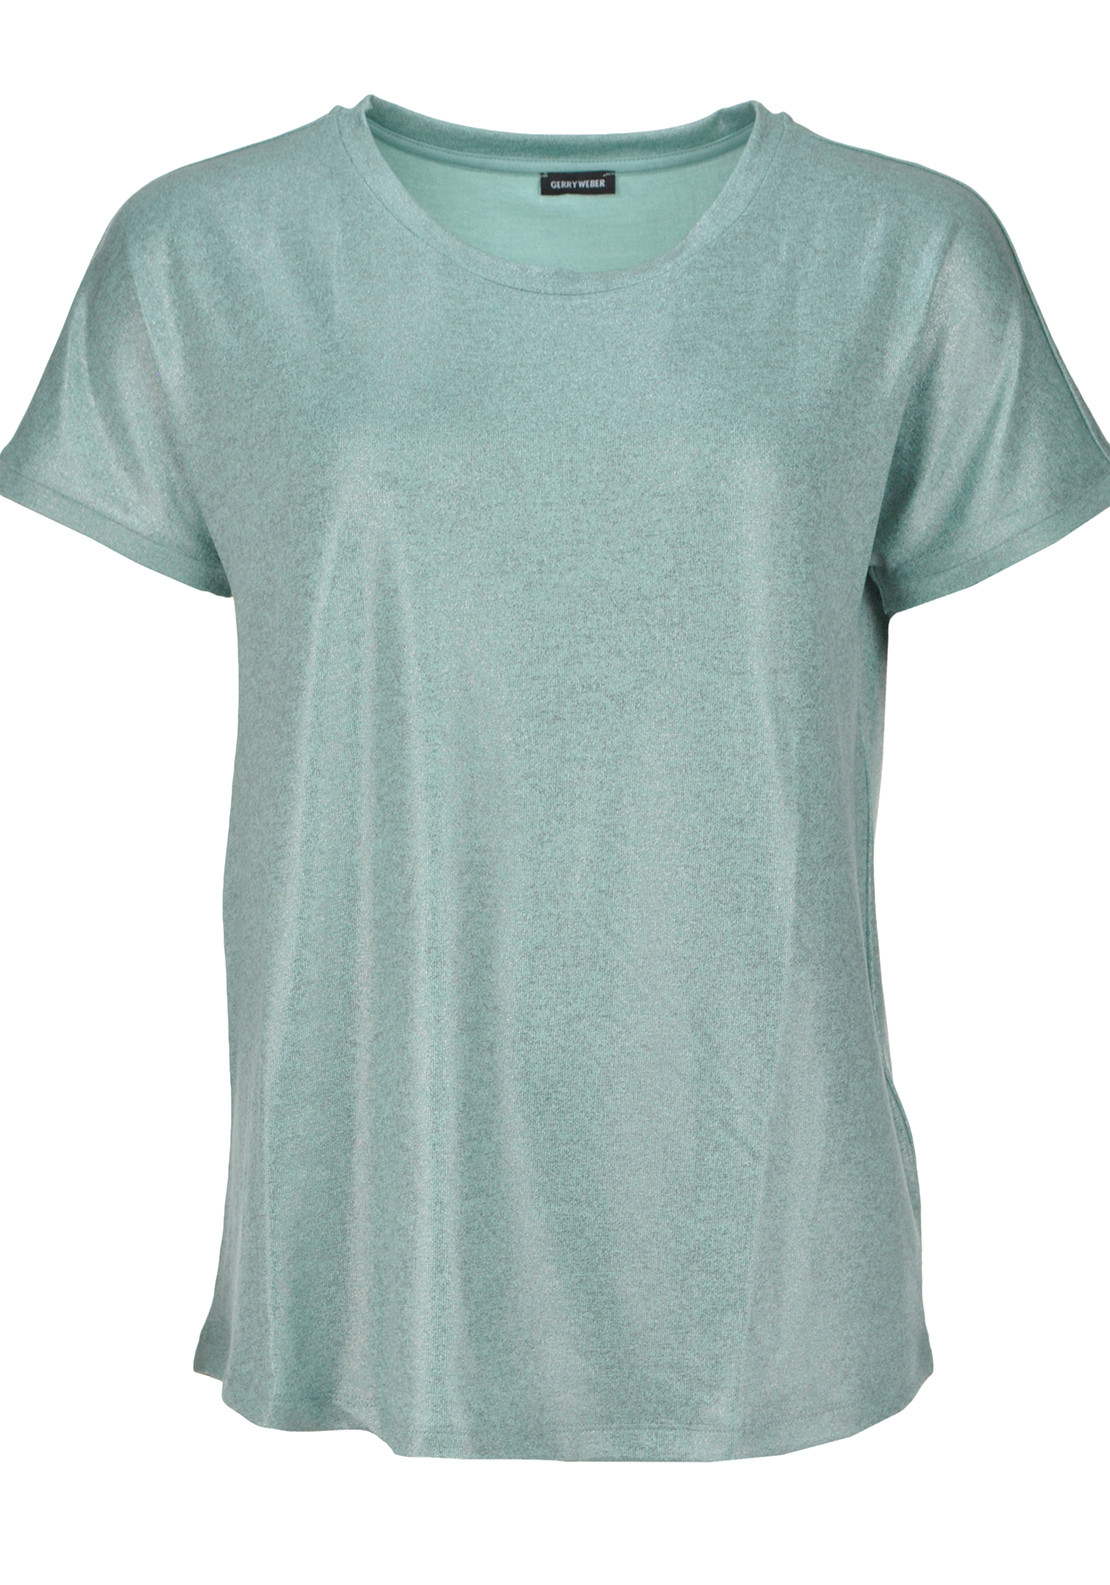 Gerry Weber Metallic Short Sleeve T-Shirt, Mint Green